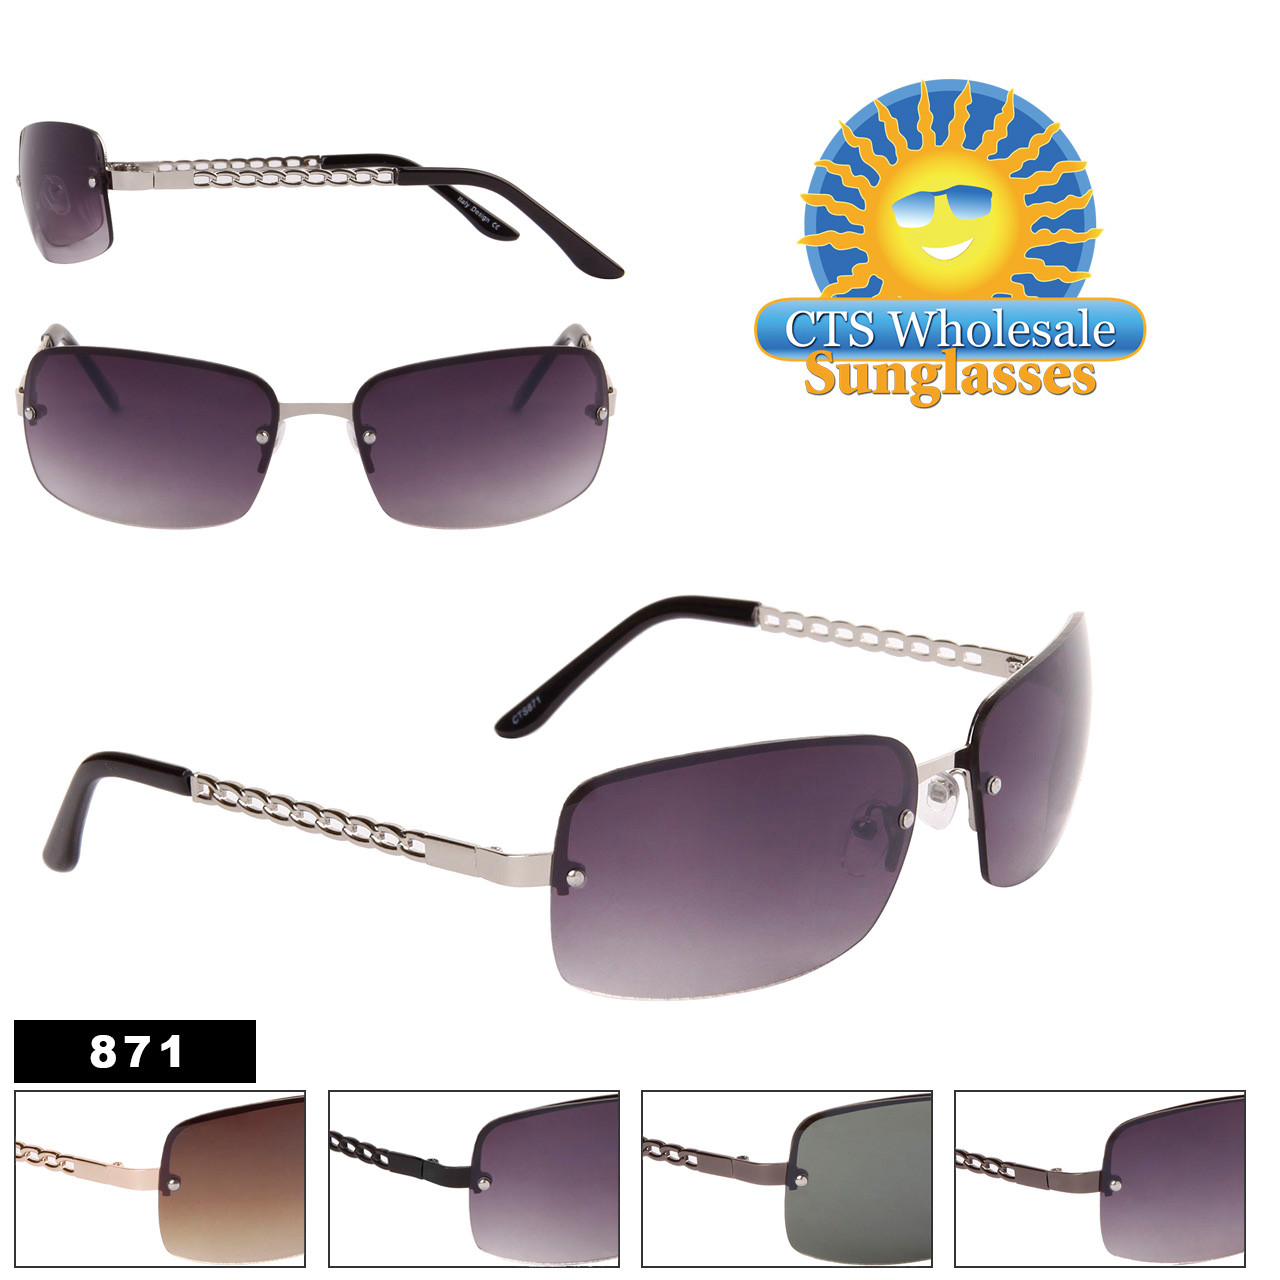 Rimless Fashion Sunglasses with Chain Temple - Style #871